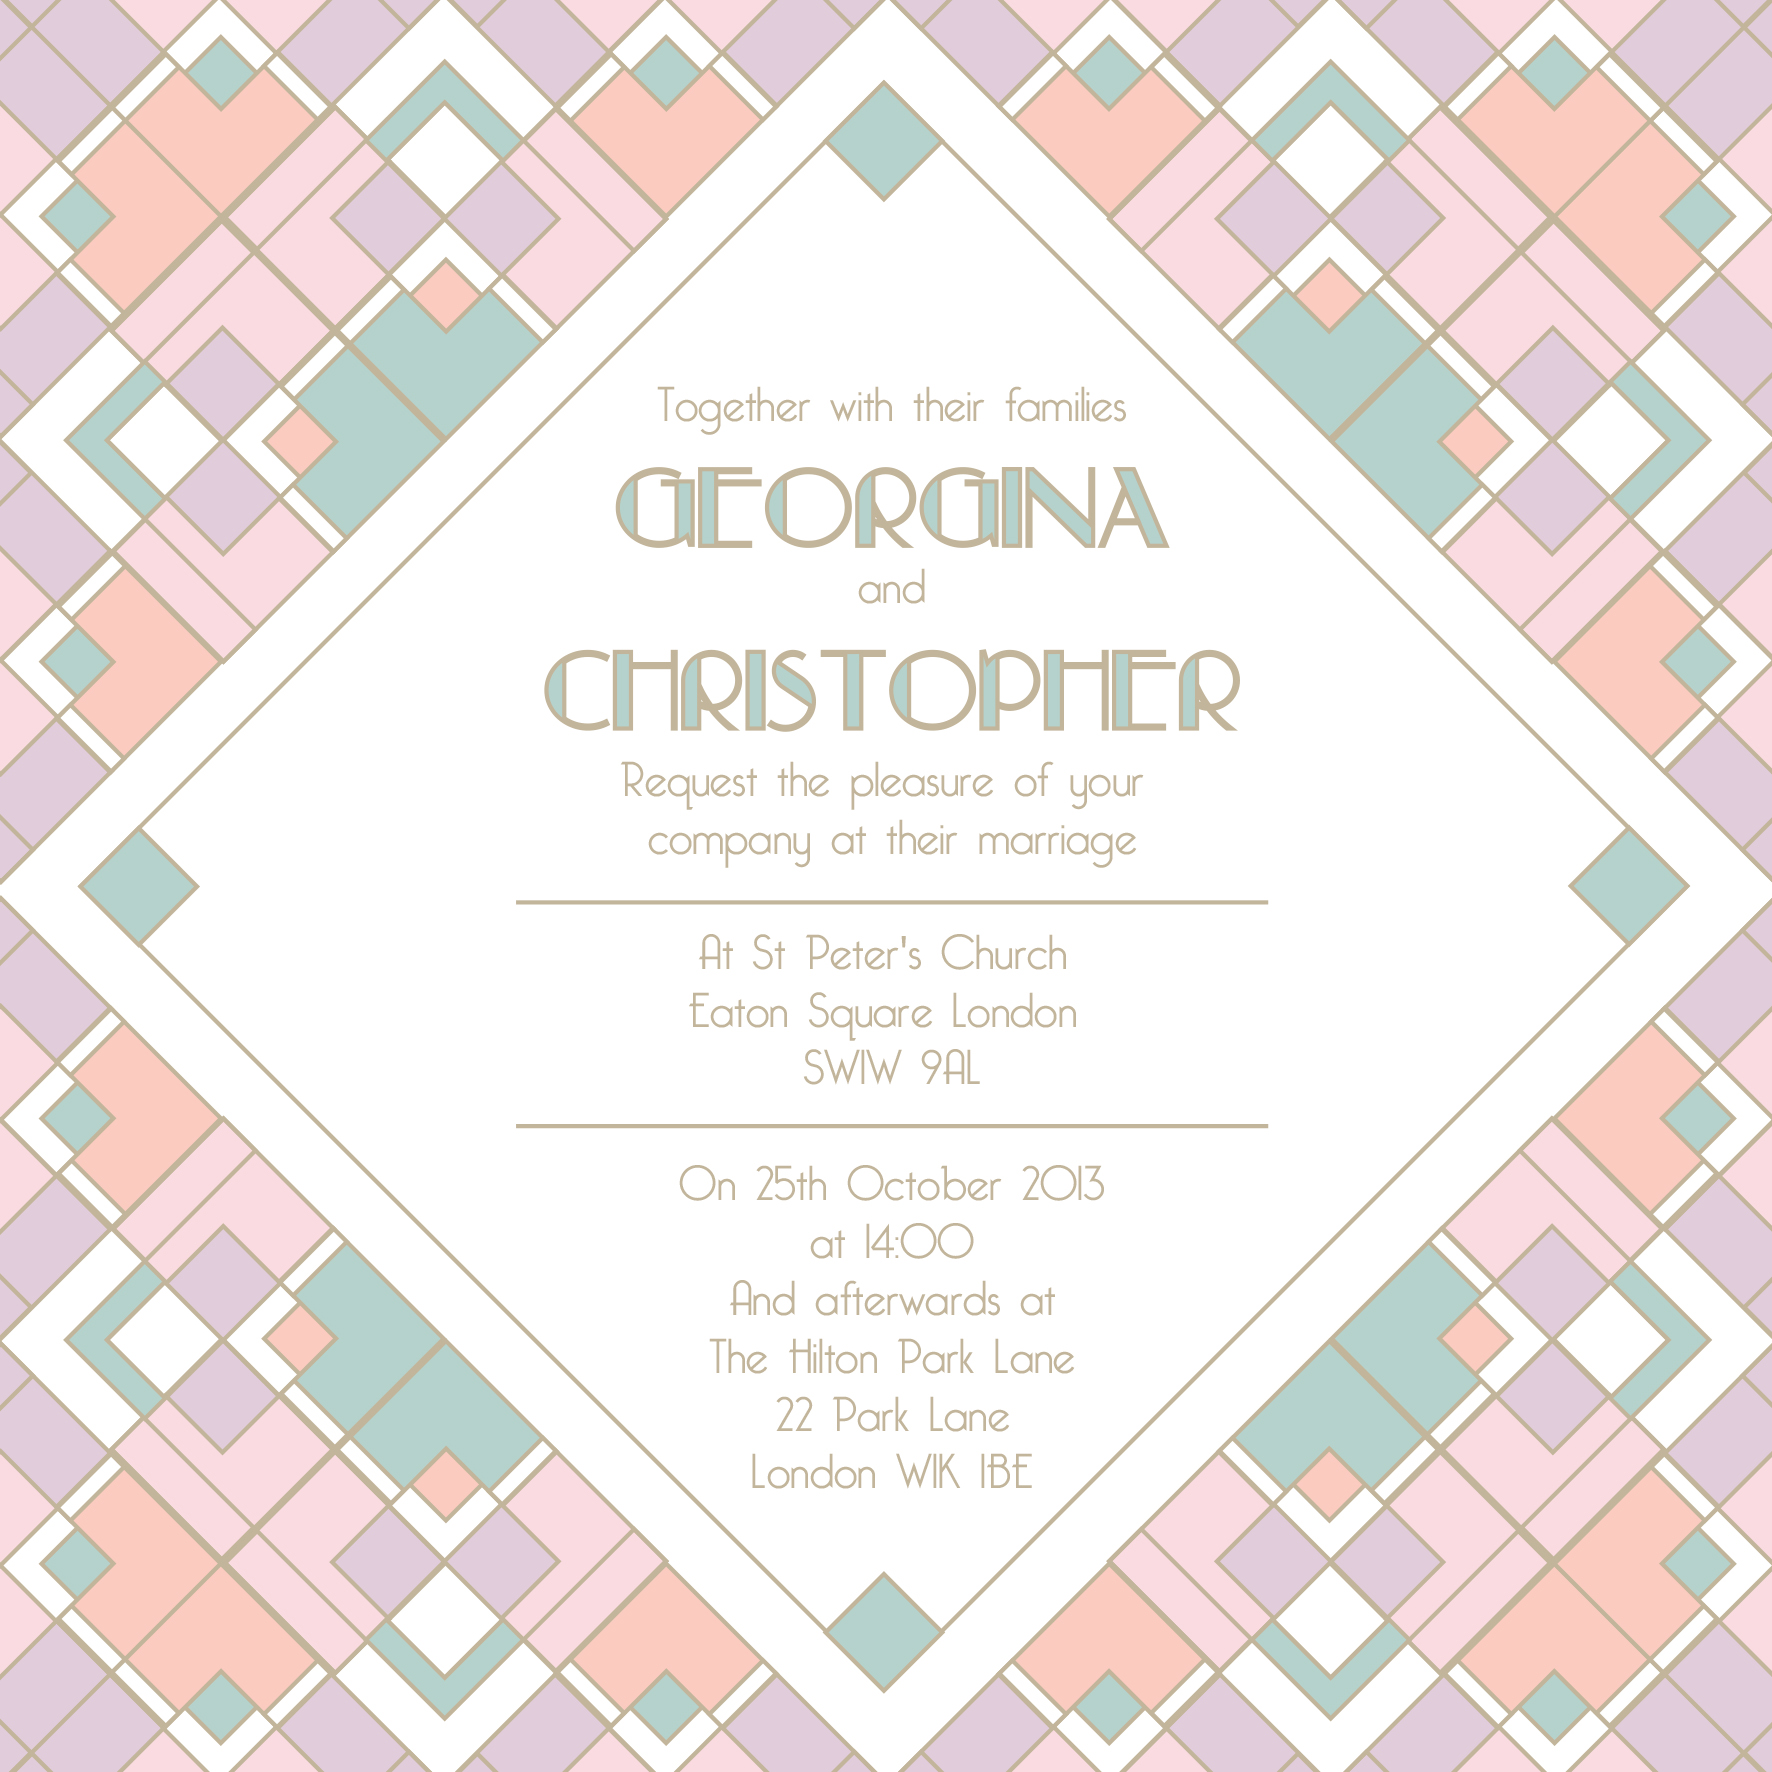 Colourful 1920s art deco wedding invitation, Autumn winter trends 2013 by Ananyacards.com